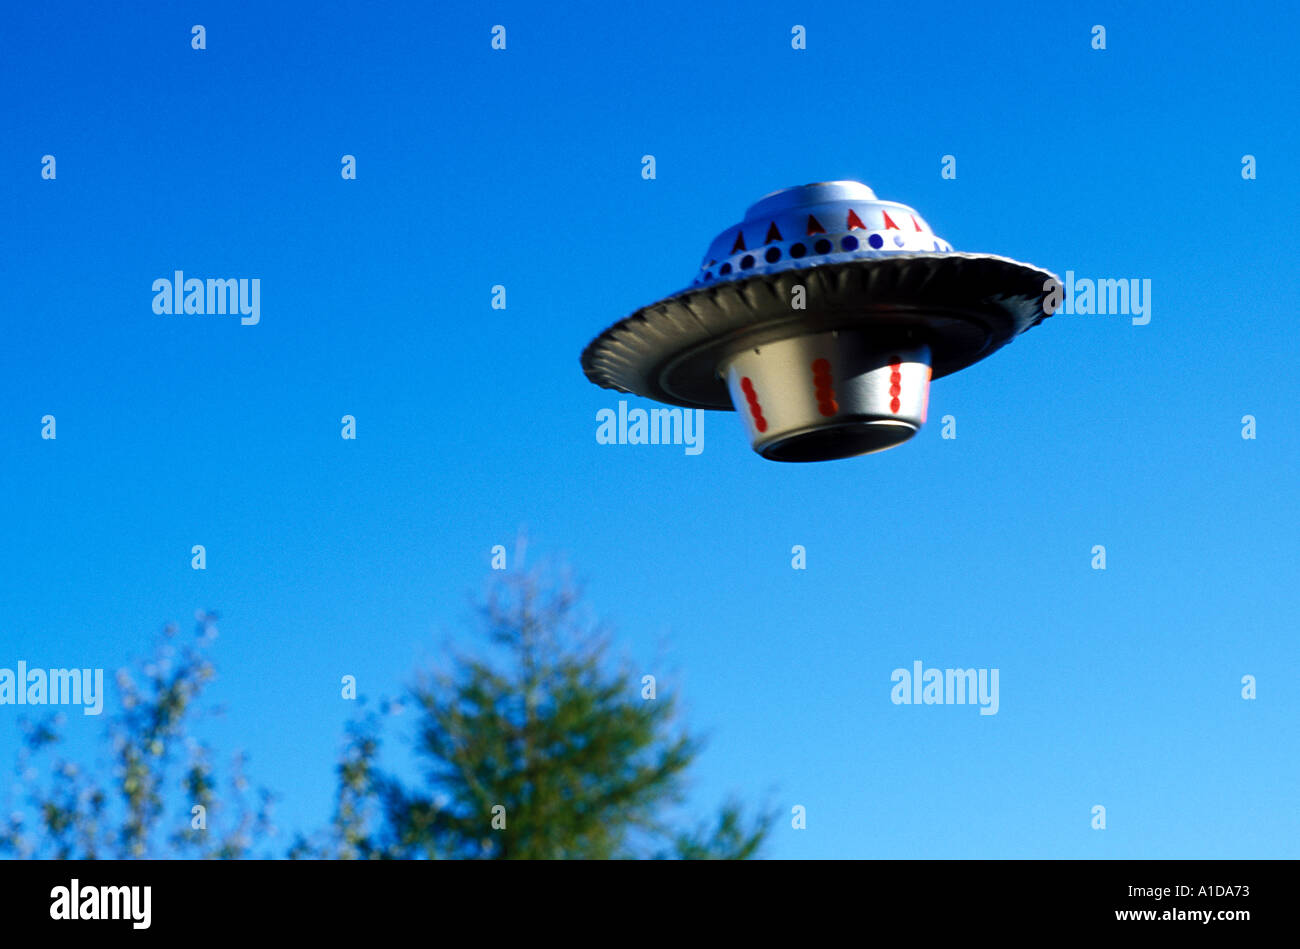 Sci Fi flying saucer - Stock Image